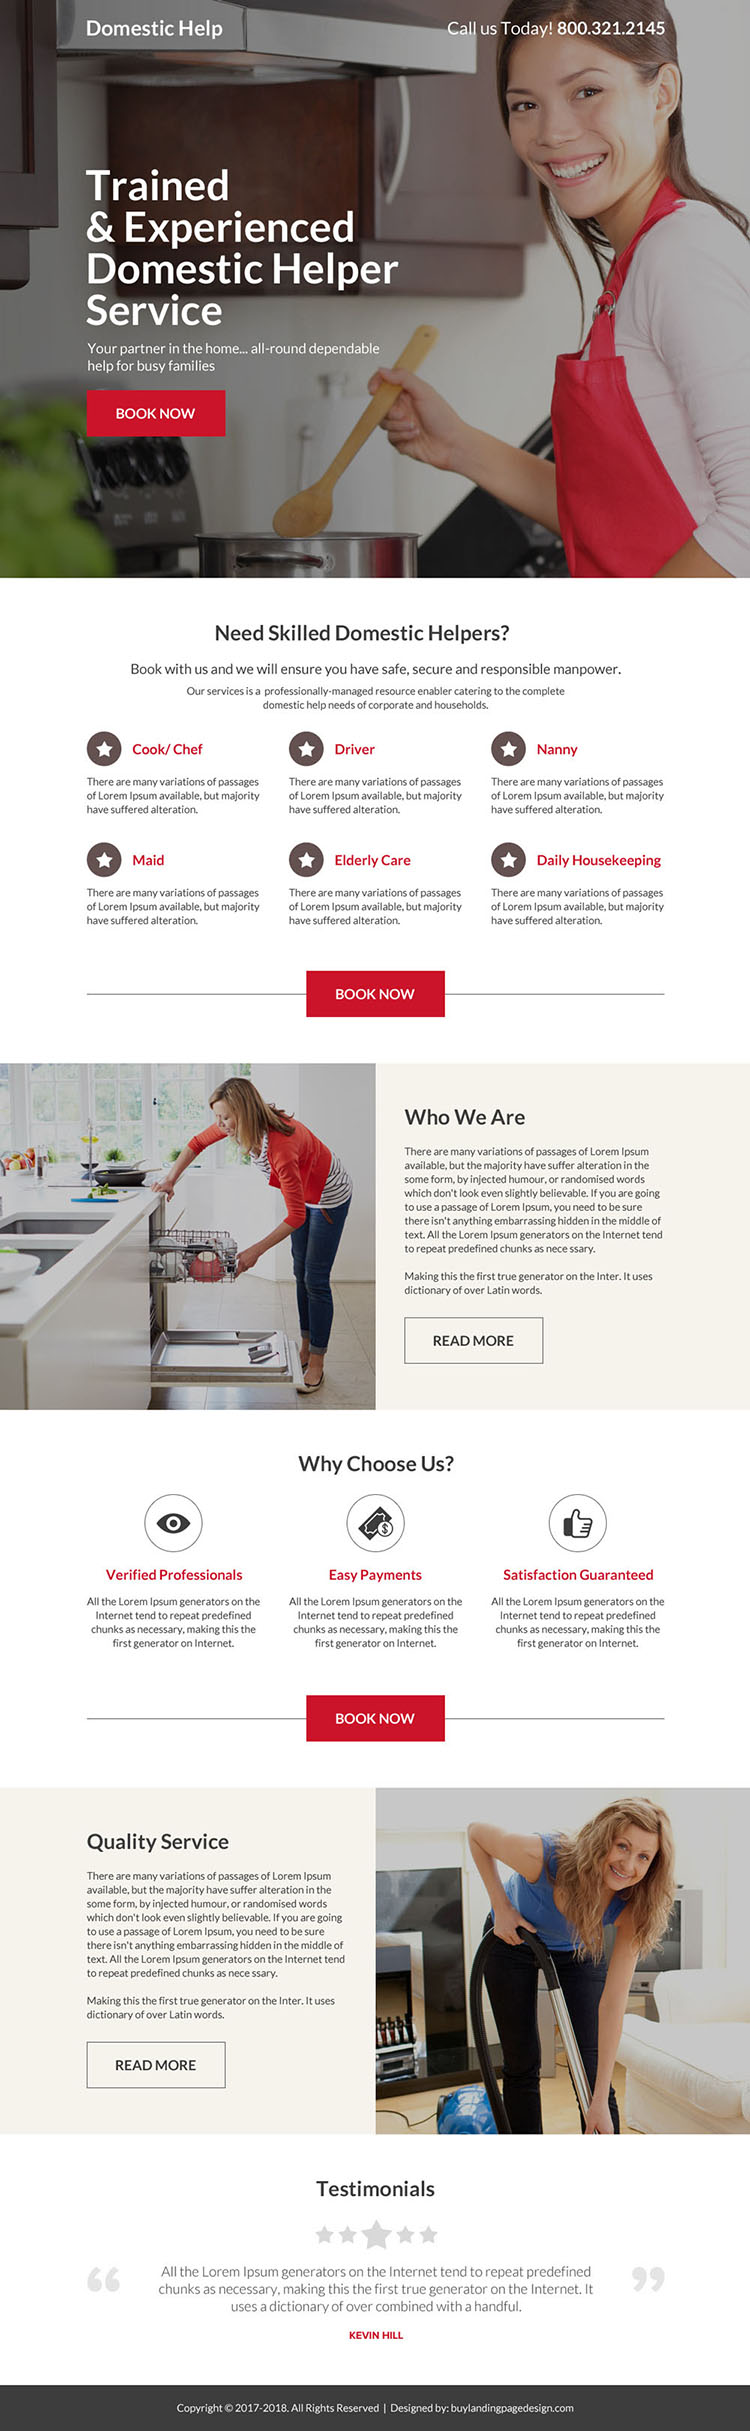 trained and experienced domestic help service landing page